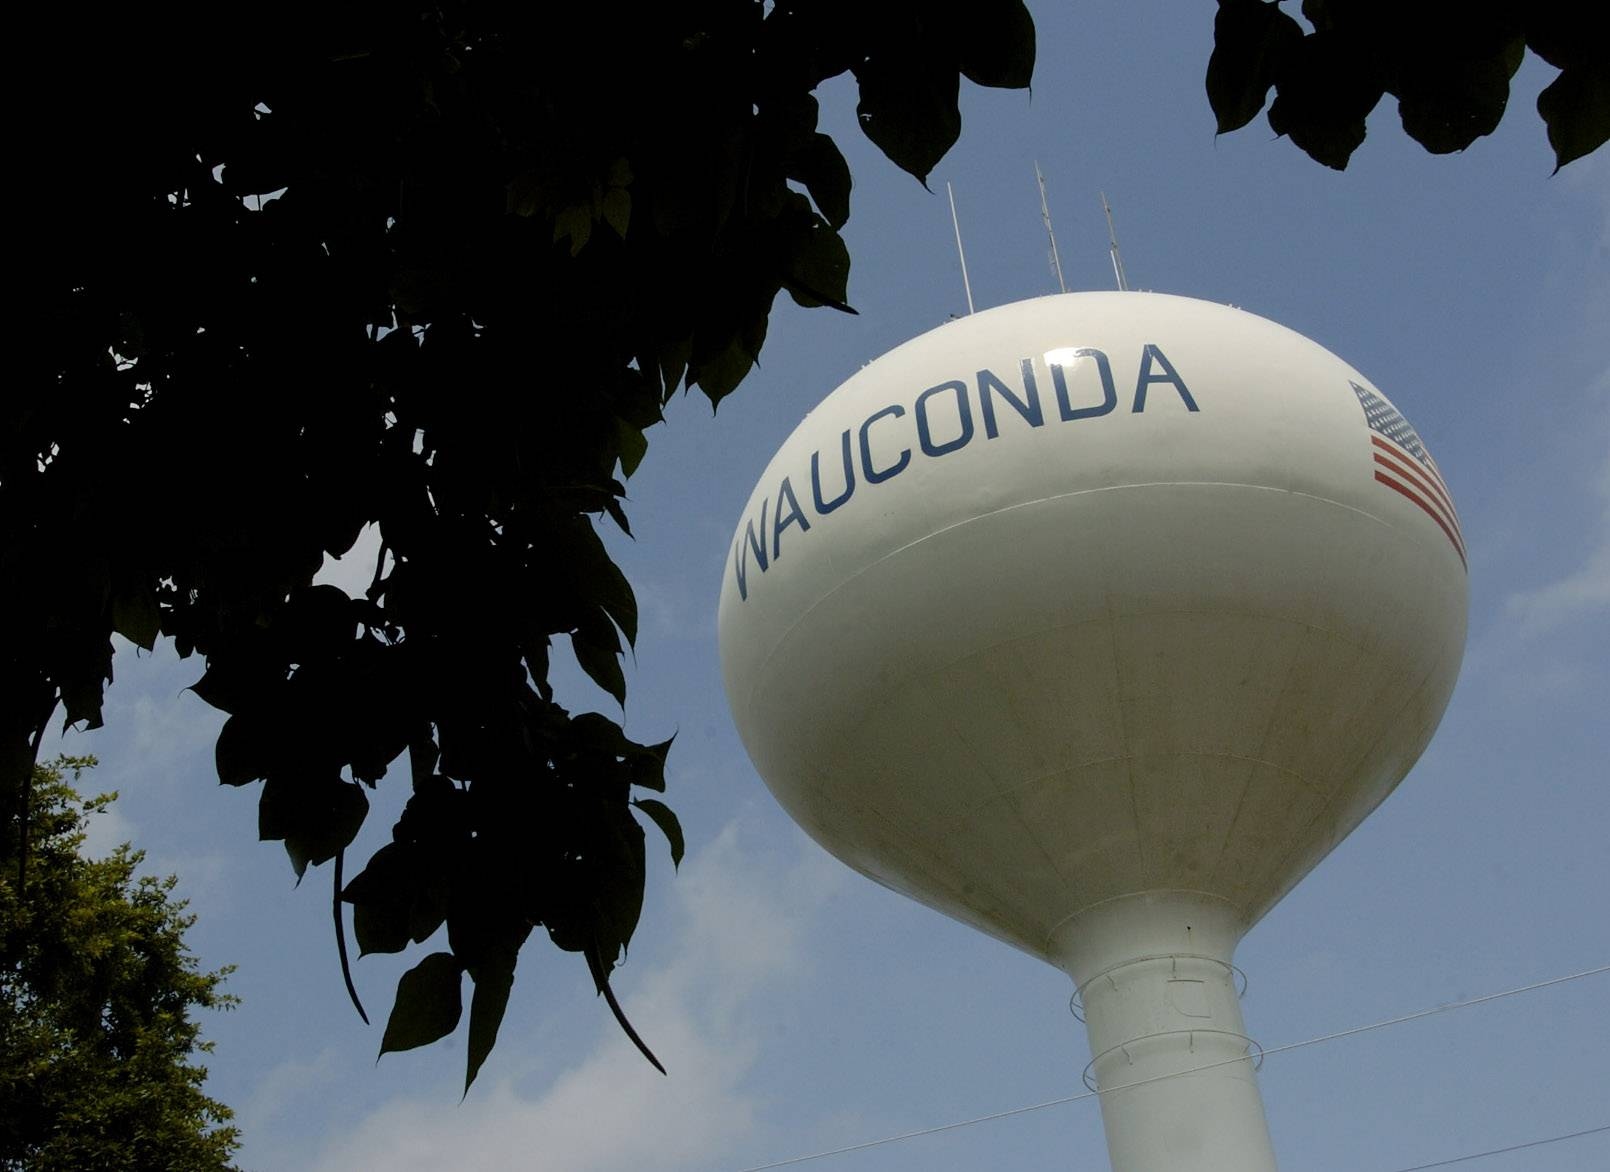 Wauconda drinking water votes delayed until September or later